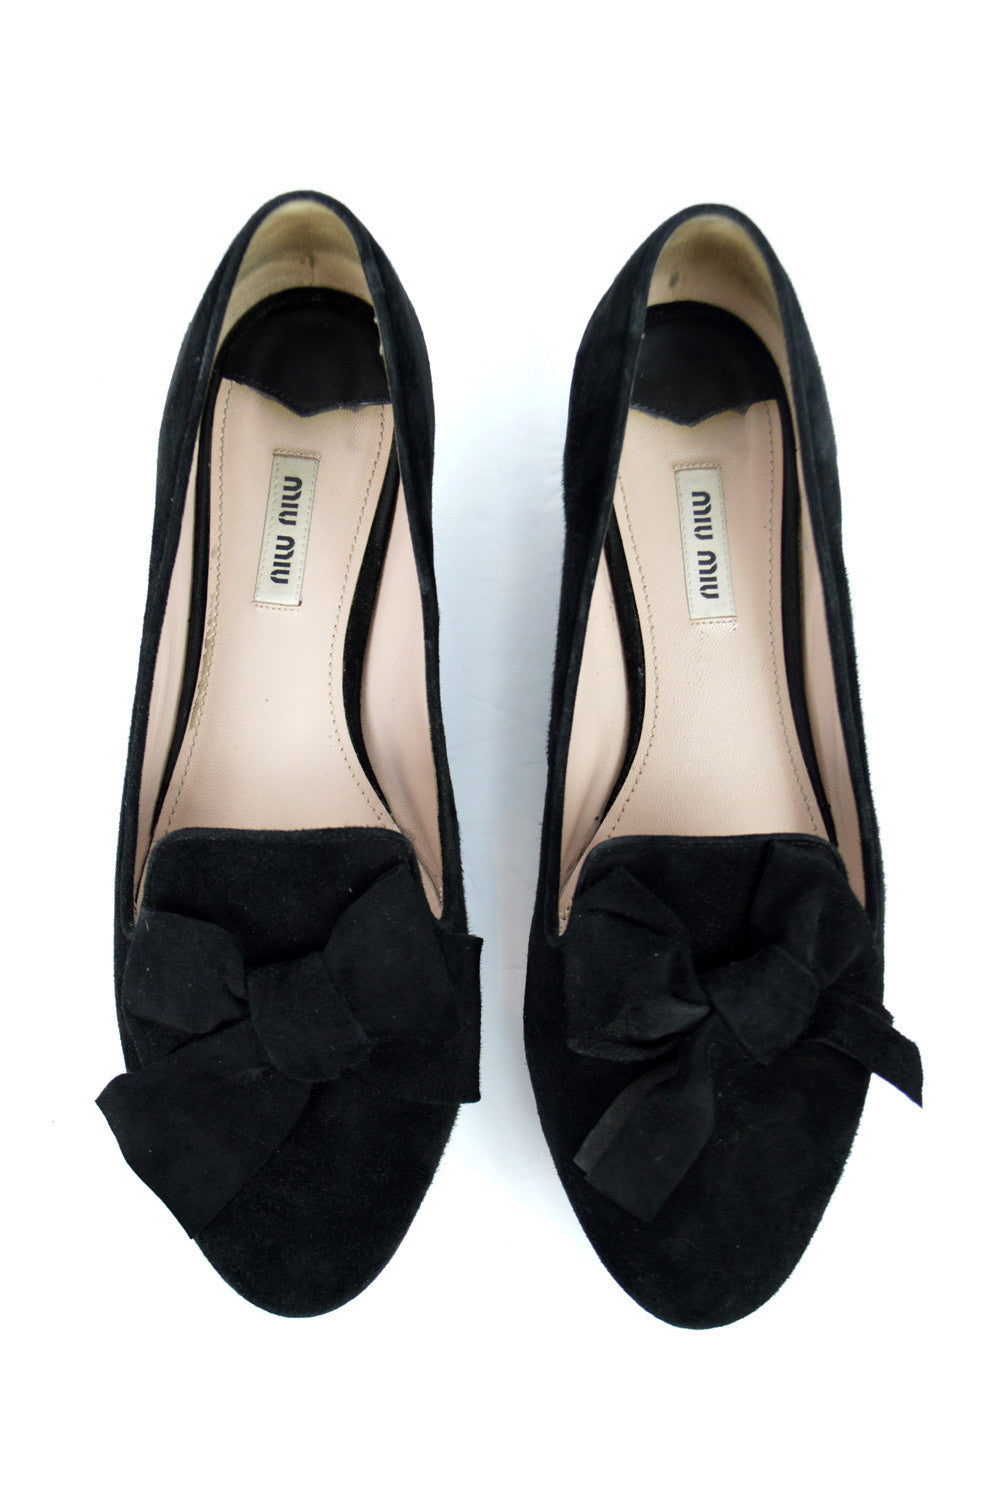 Crystal Heel Black Suede Loafers